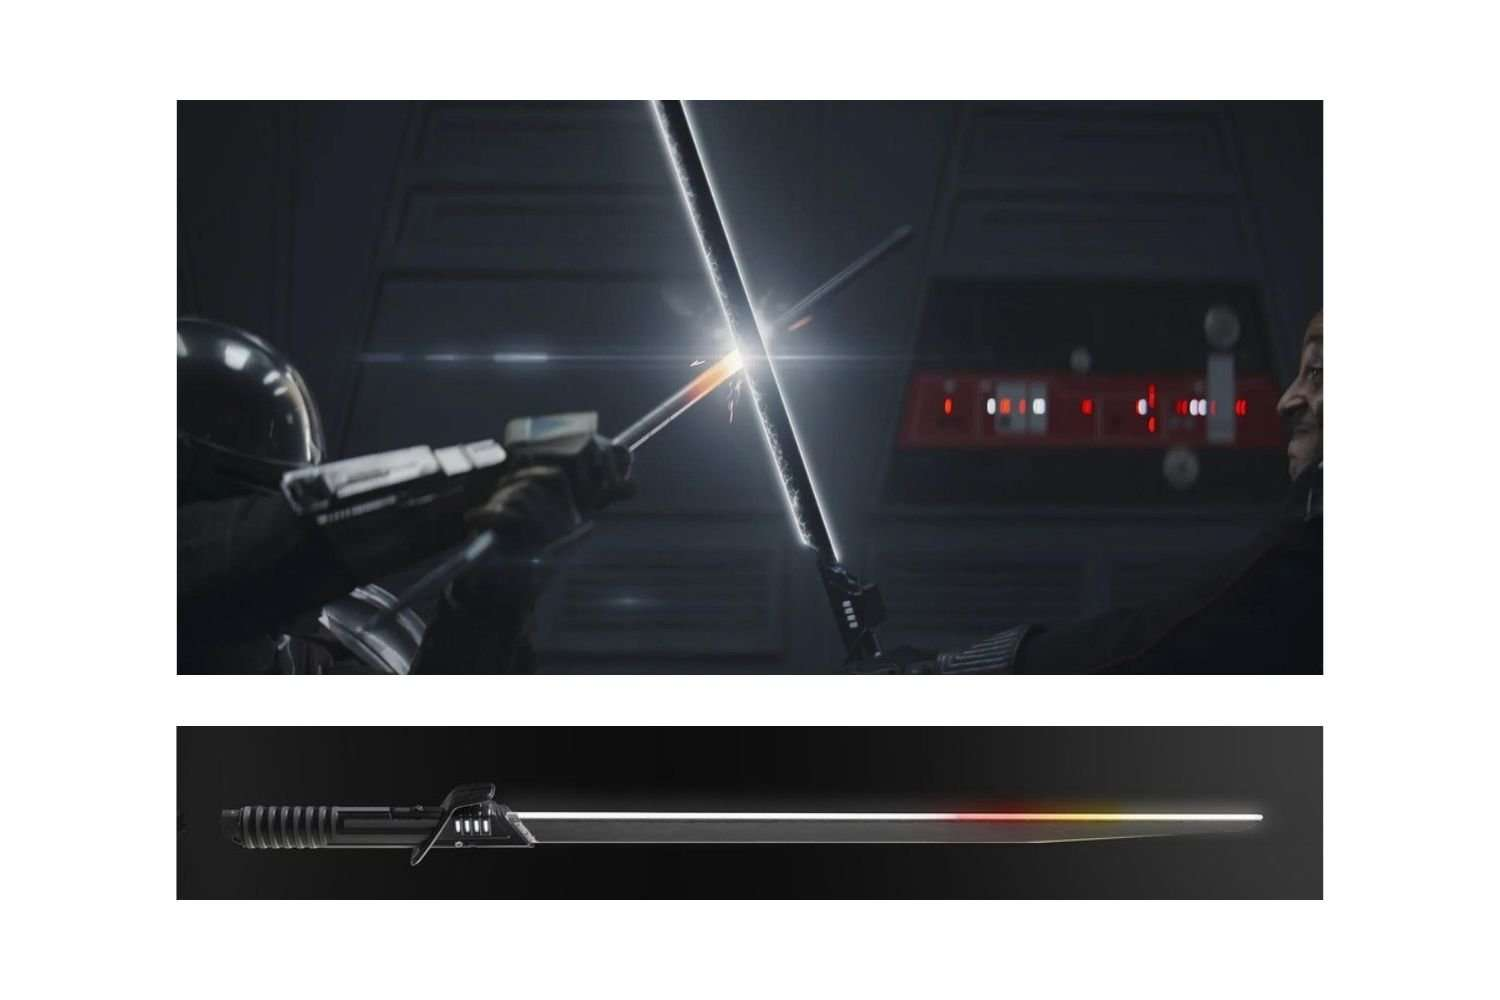 Black Lightsabers history and meaning